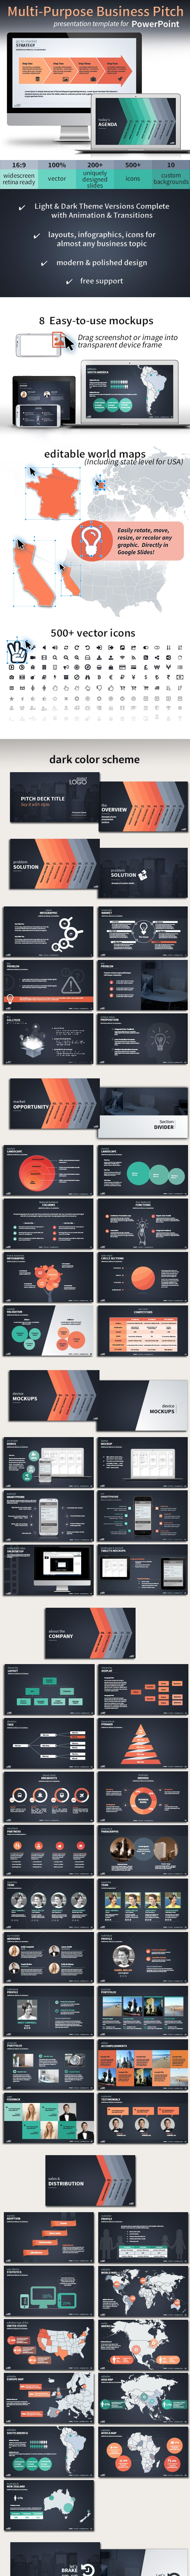 Multi-Purpose Vector Business Pitch Deck for PowerPoint - Pitch Deck PowerPoint Templates